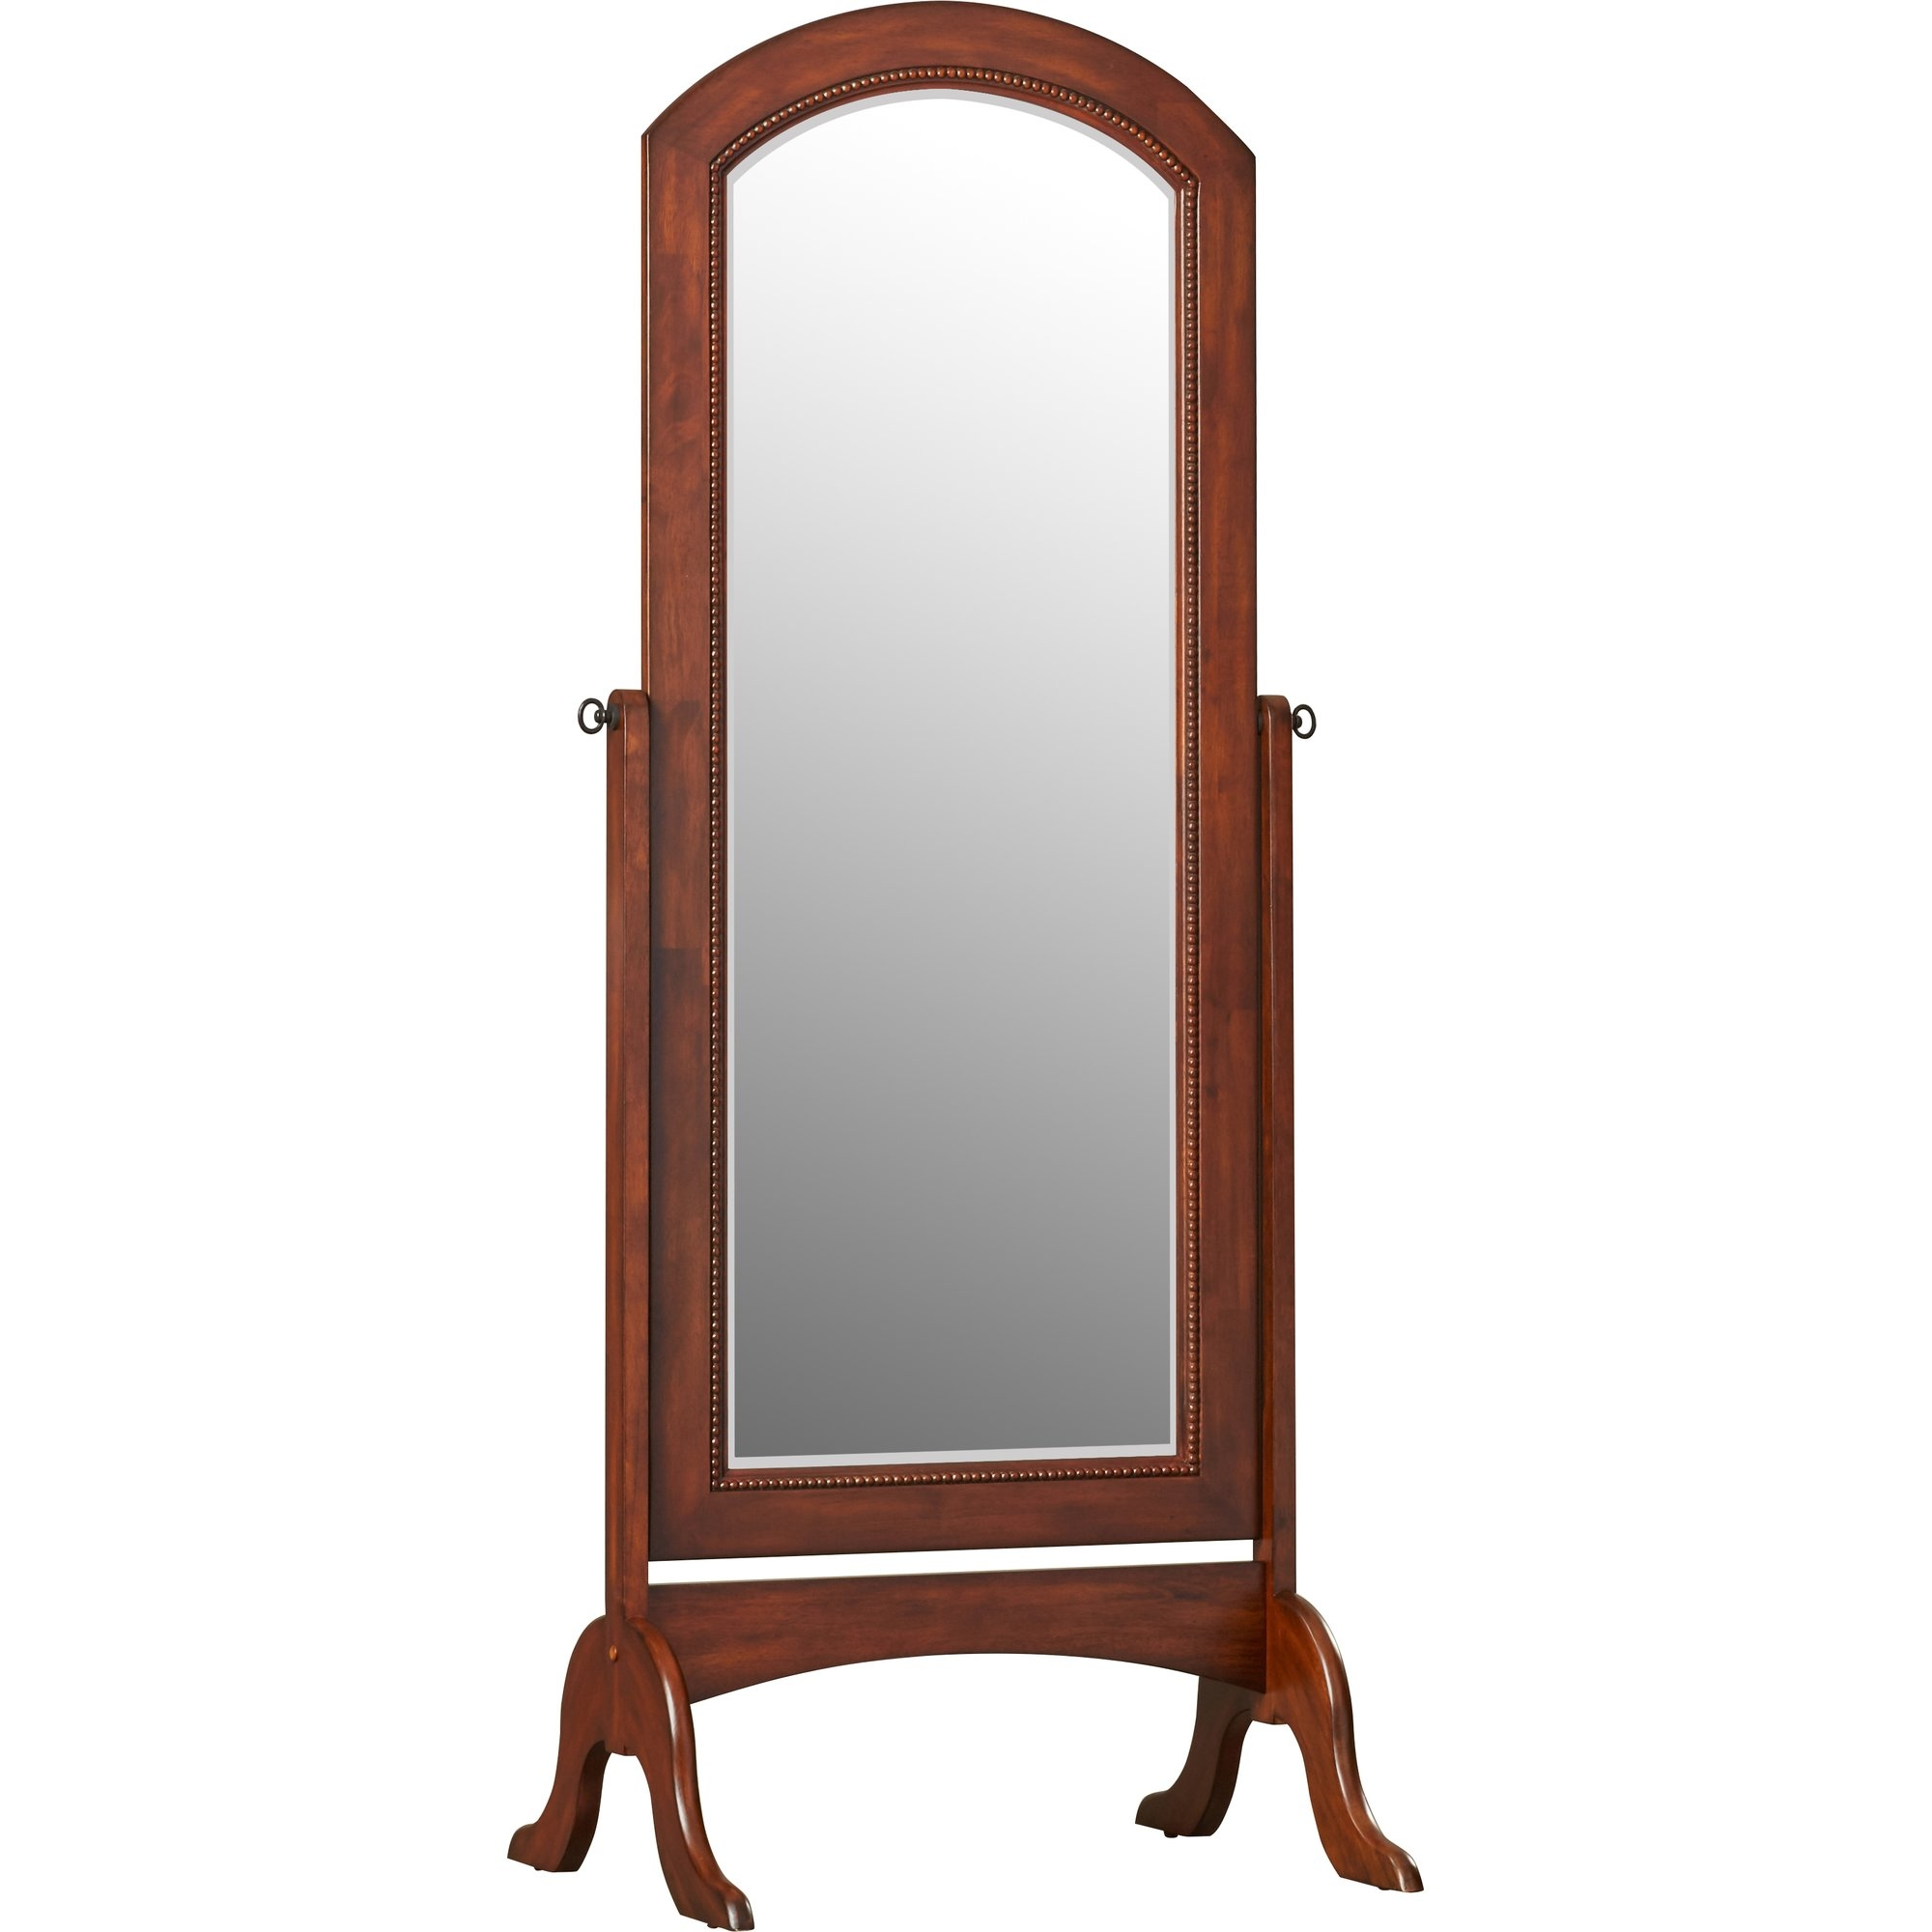 Dar Home Co Cheval Mirror Reviews Wayfair With Mirror Cheval (Image 7 of 15)